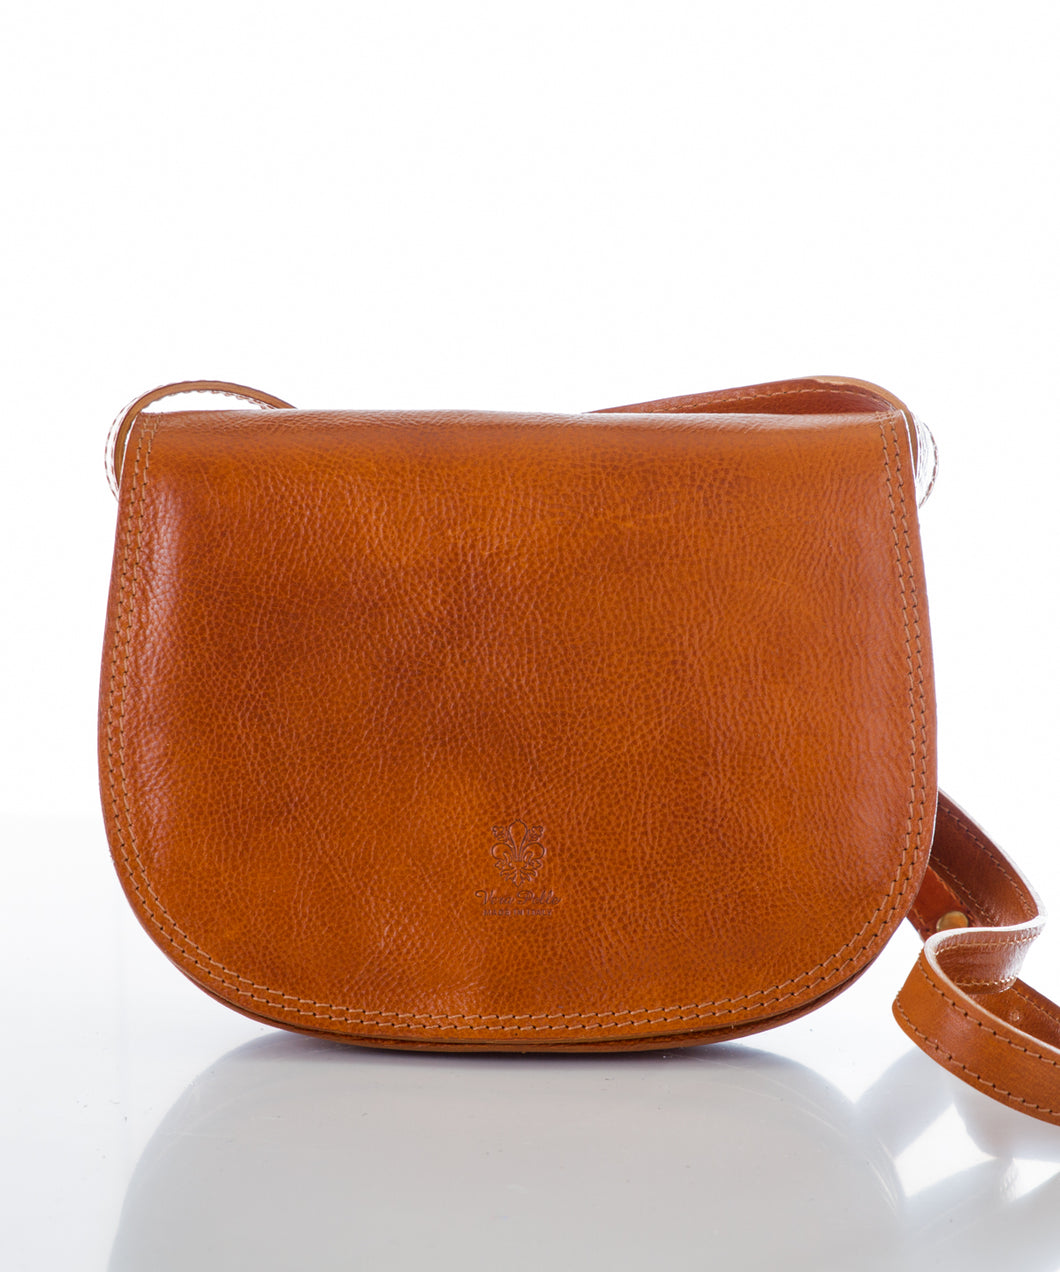 Betulla Nicole Saddle Bag in Tan